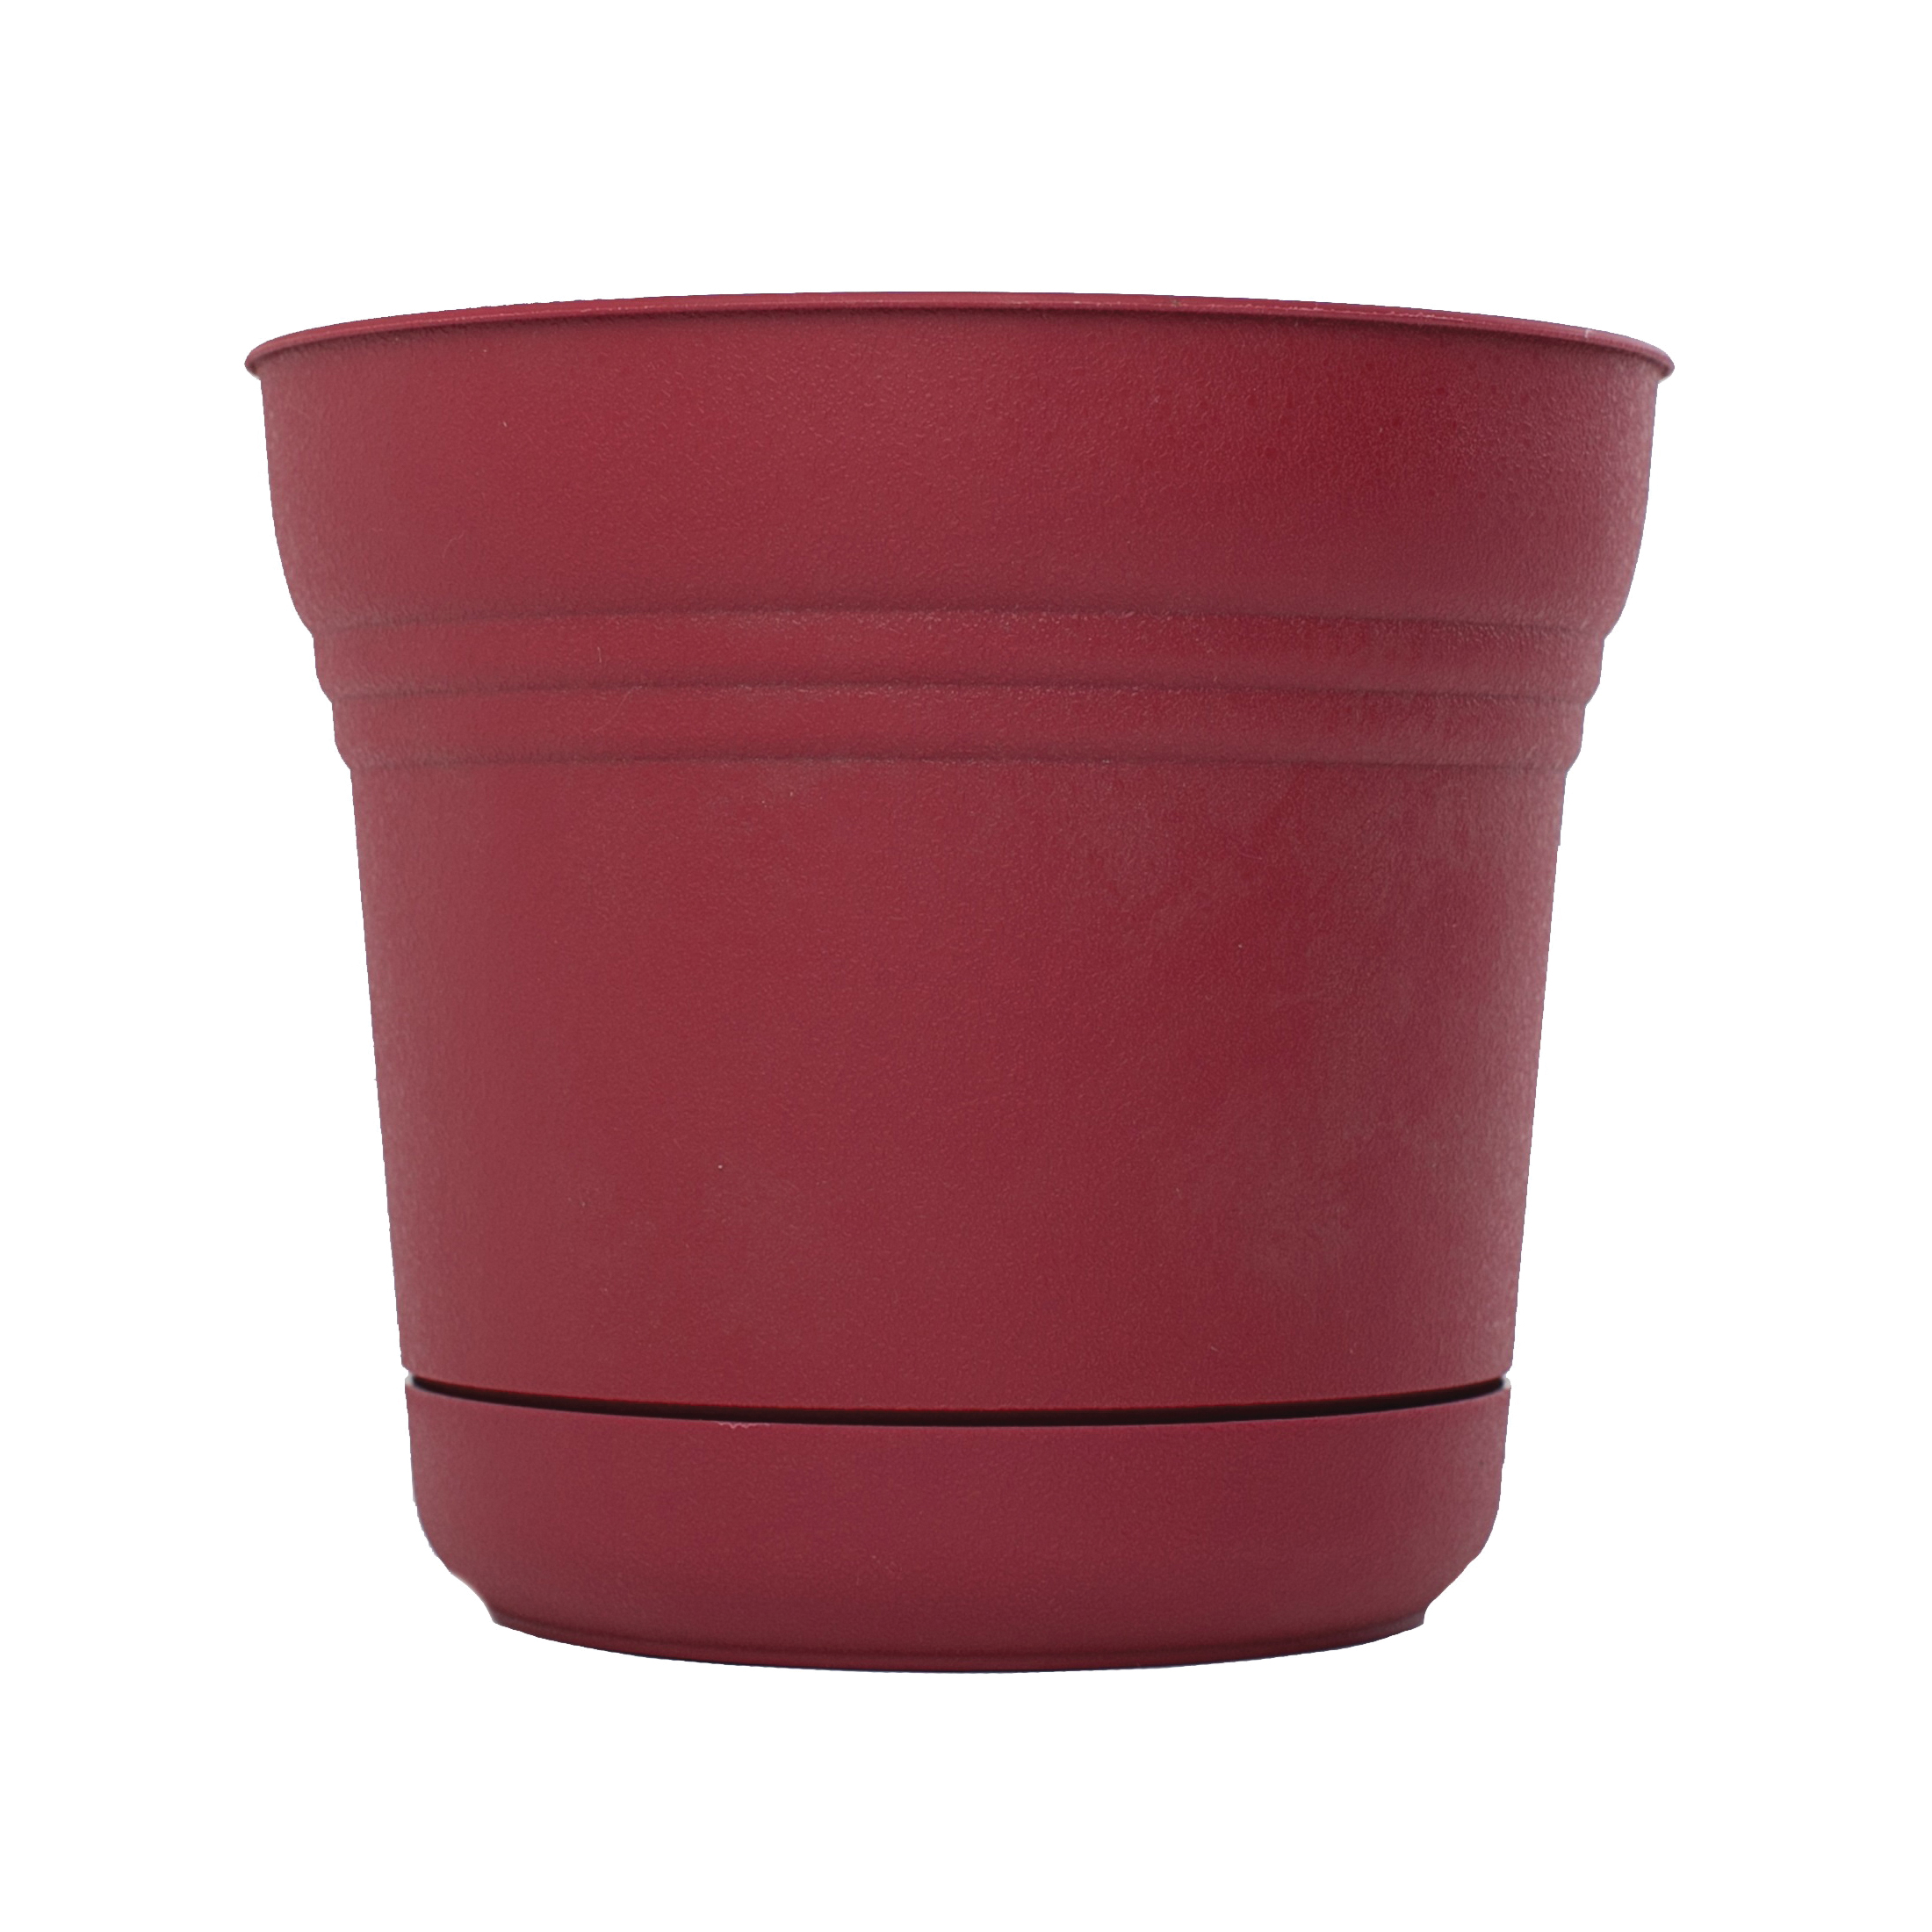 Picture of Bloem Saturn SP0512 Planter, 4-1/2 in W, Polypropylene, Union Red